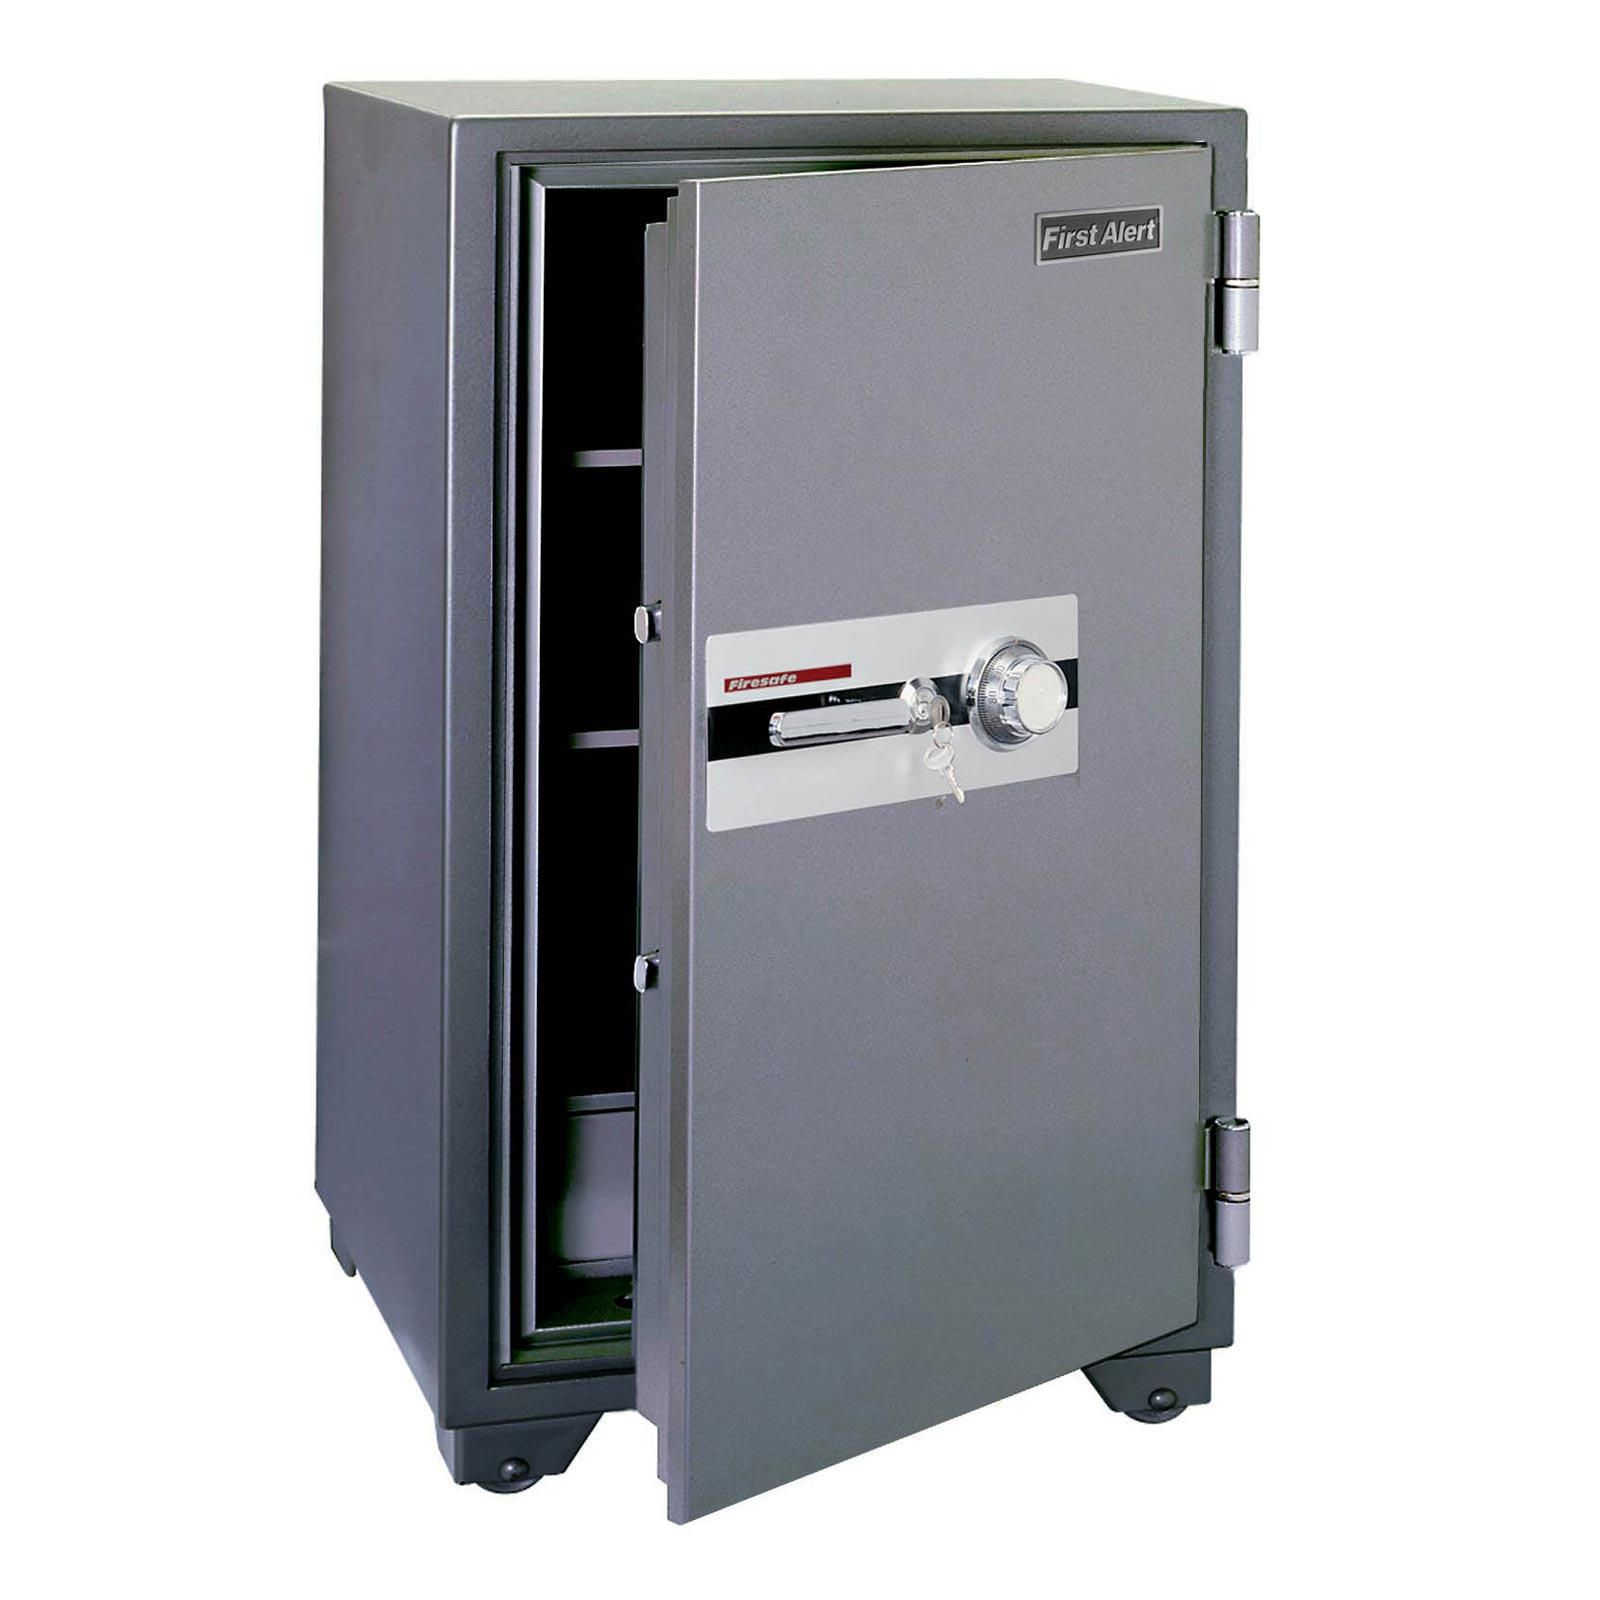 First Alert 2702f Safe 2 Hour Steel Fire Safe With Combination Lock